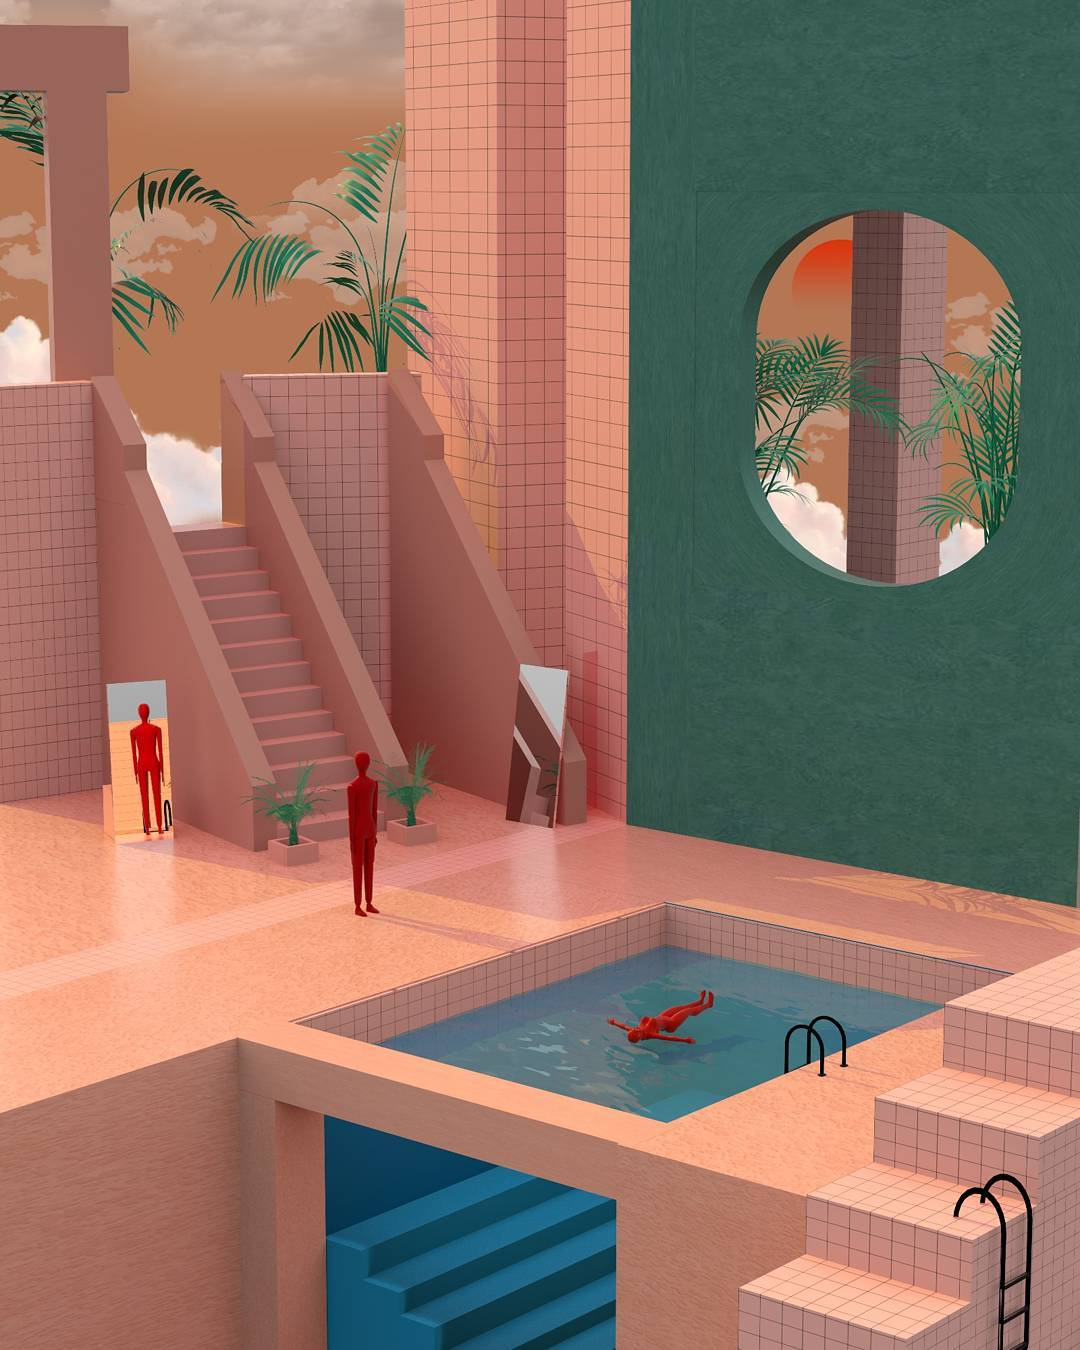 Surreal Illustrations Pushing The Boundaries Of Spatial Design